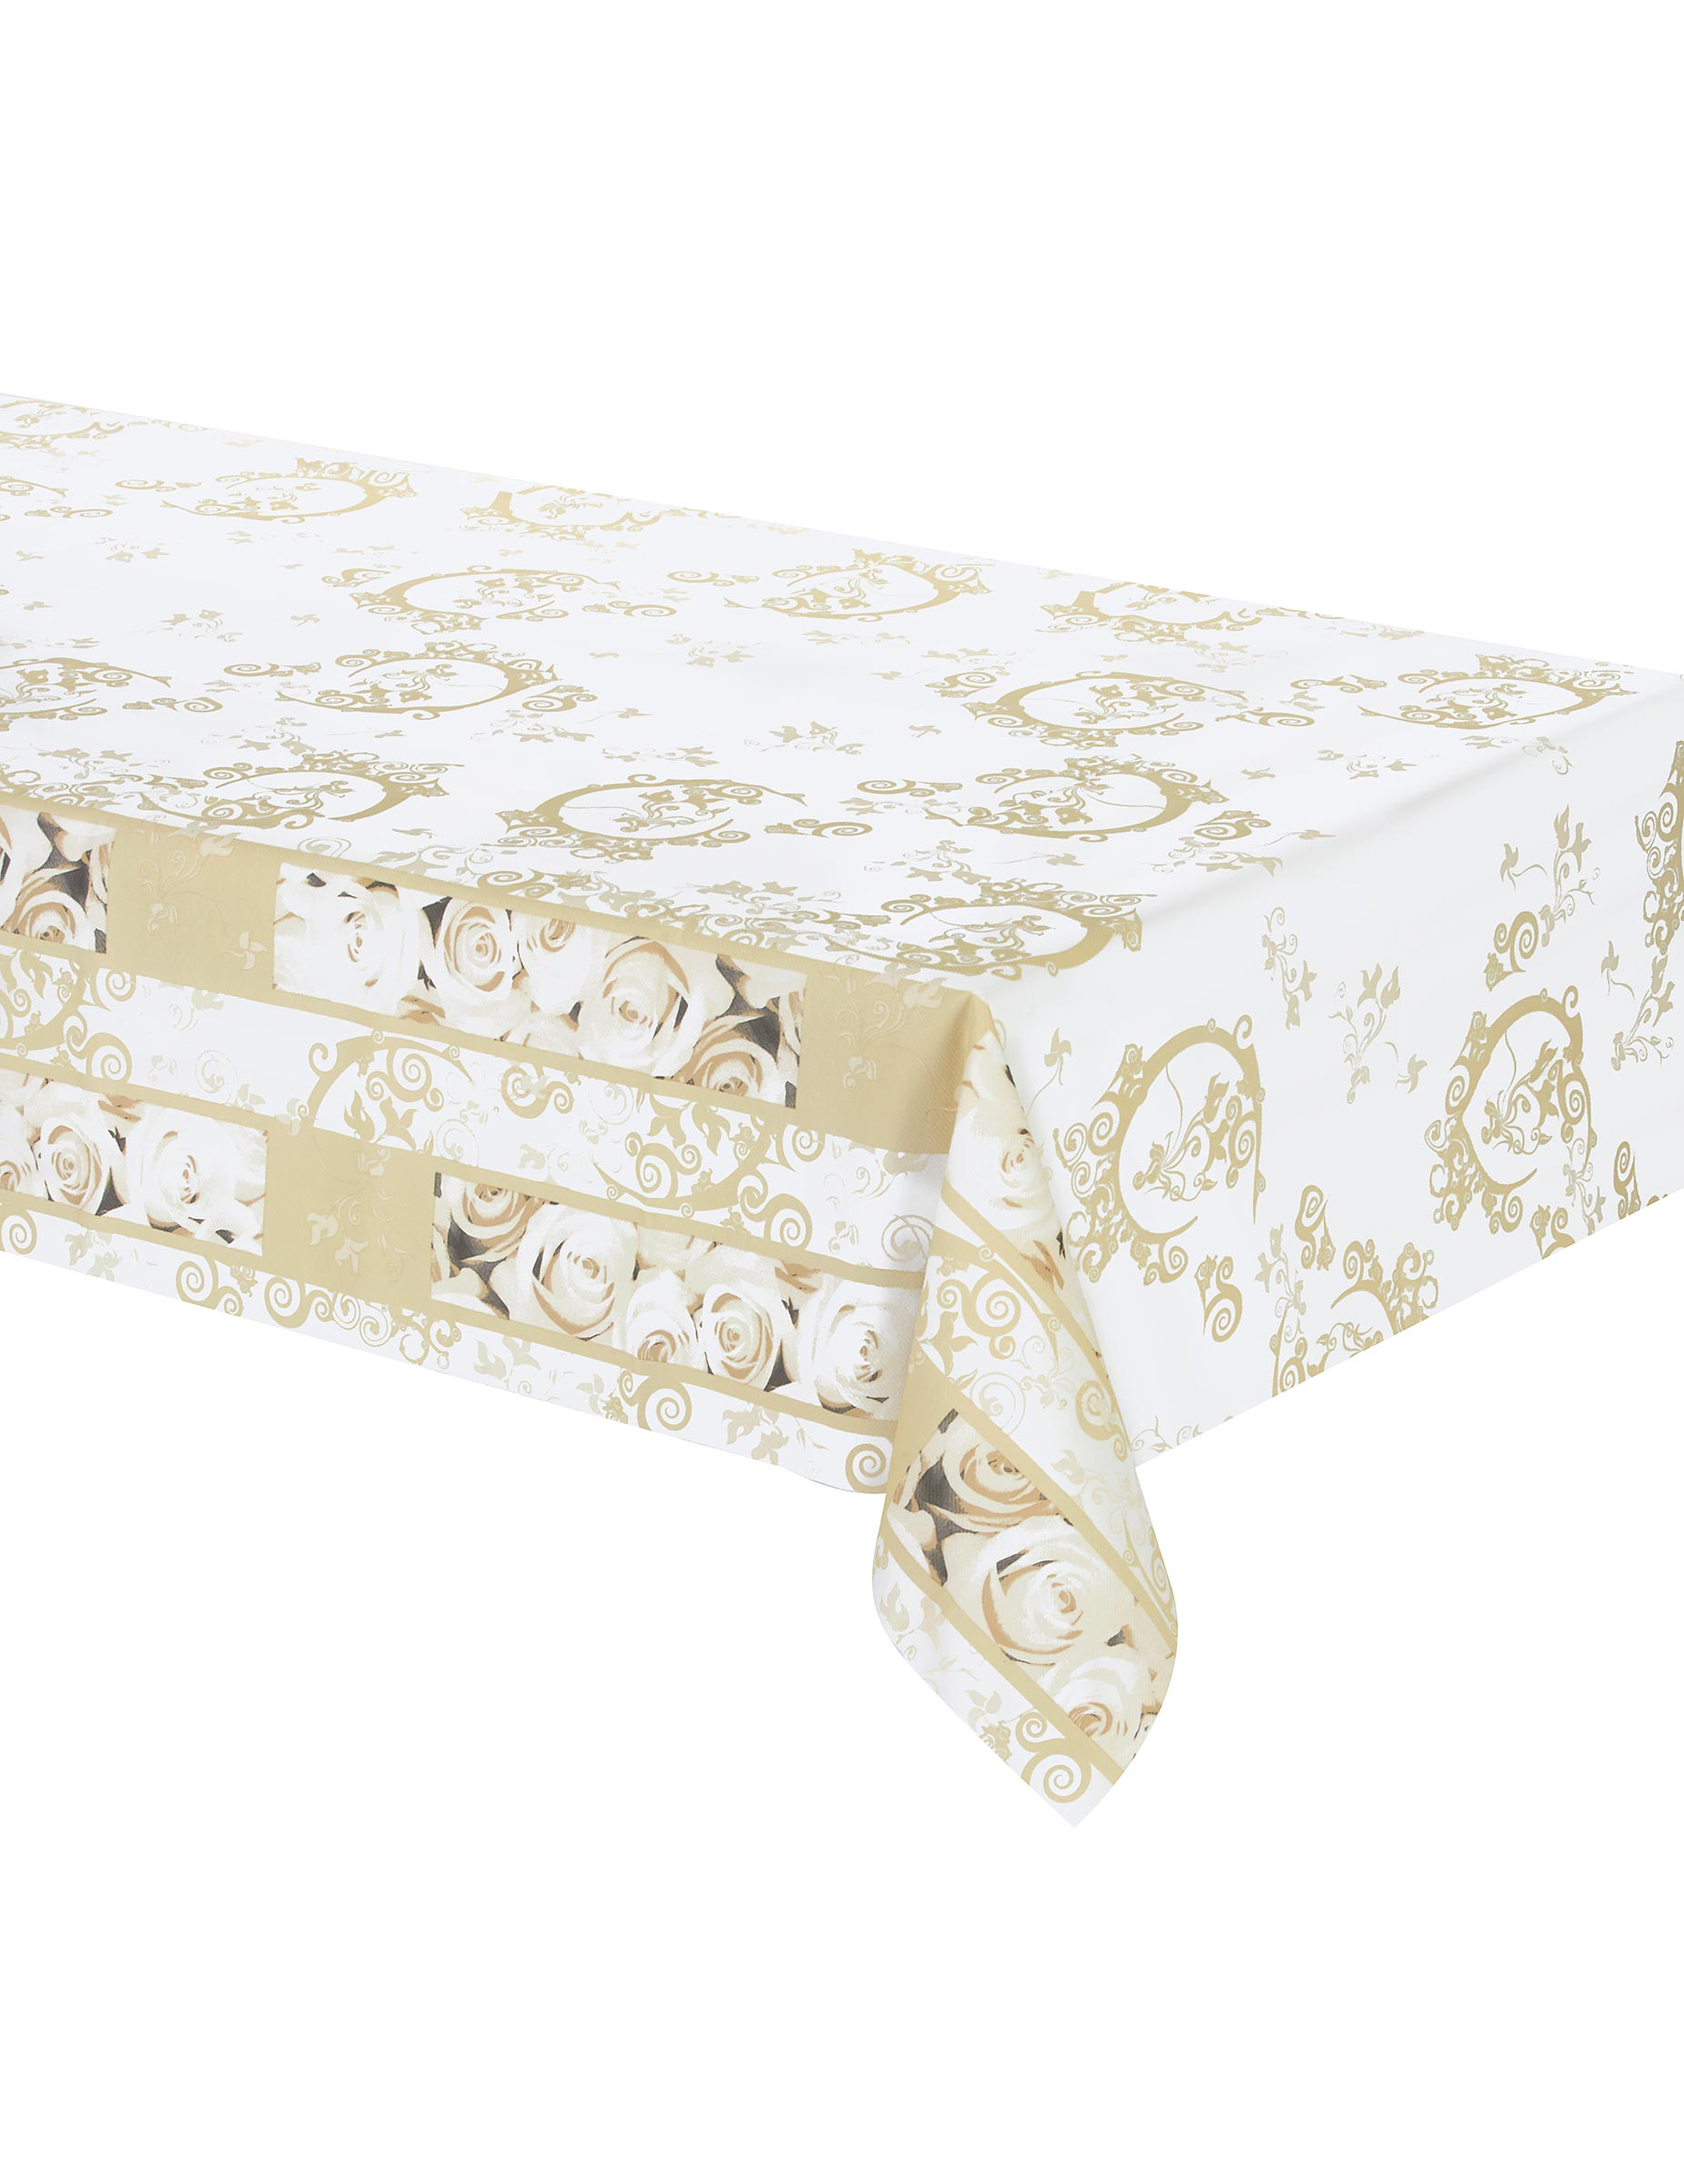 nappe en intiss roses blanches 120 x 180 cm d coration anniversaire et f tes th me sur. Black Bedroom Furniture Sets. Home Design Ideas